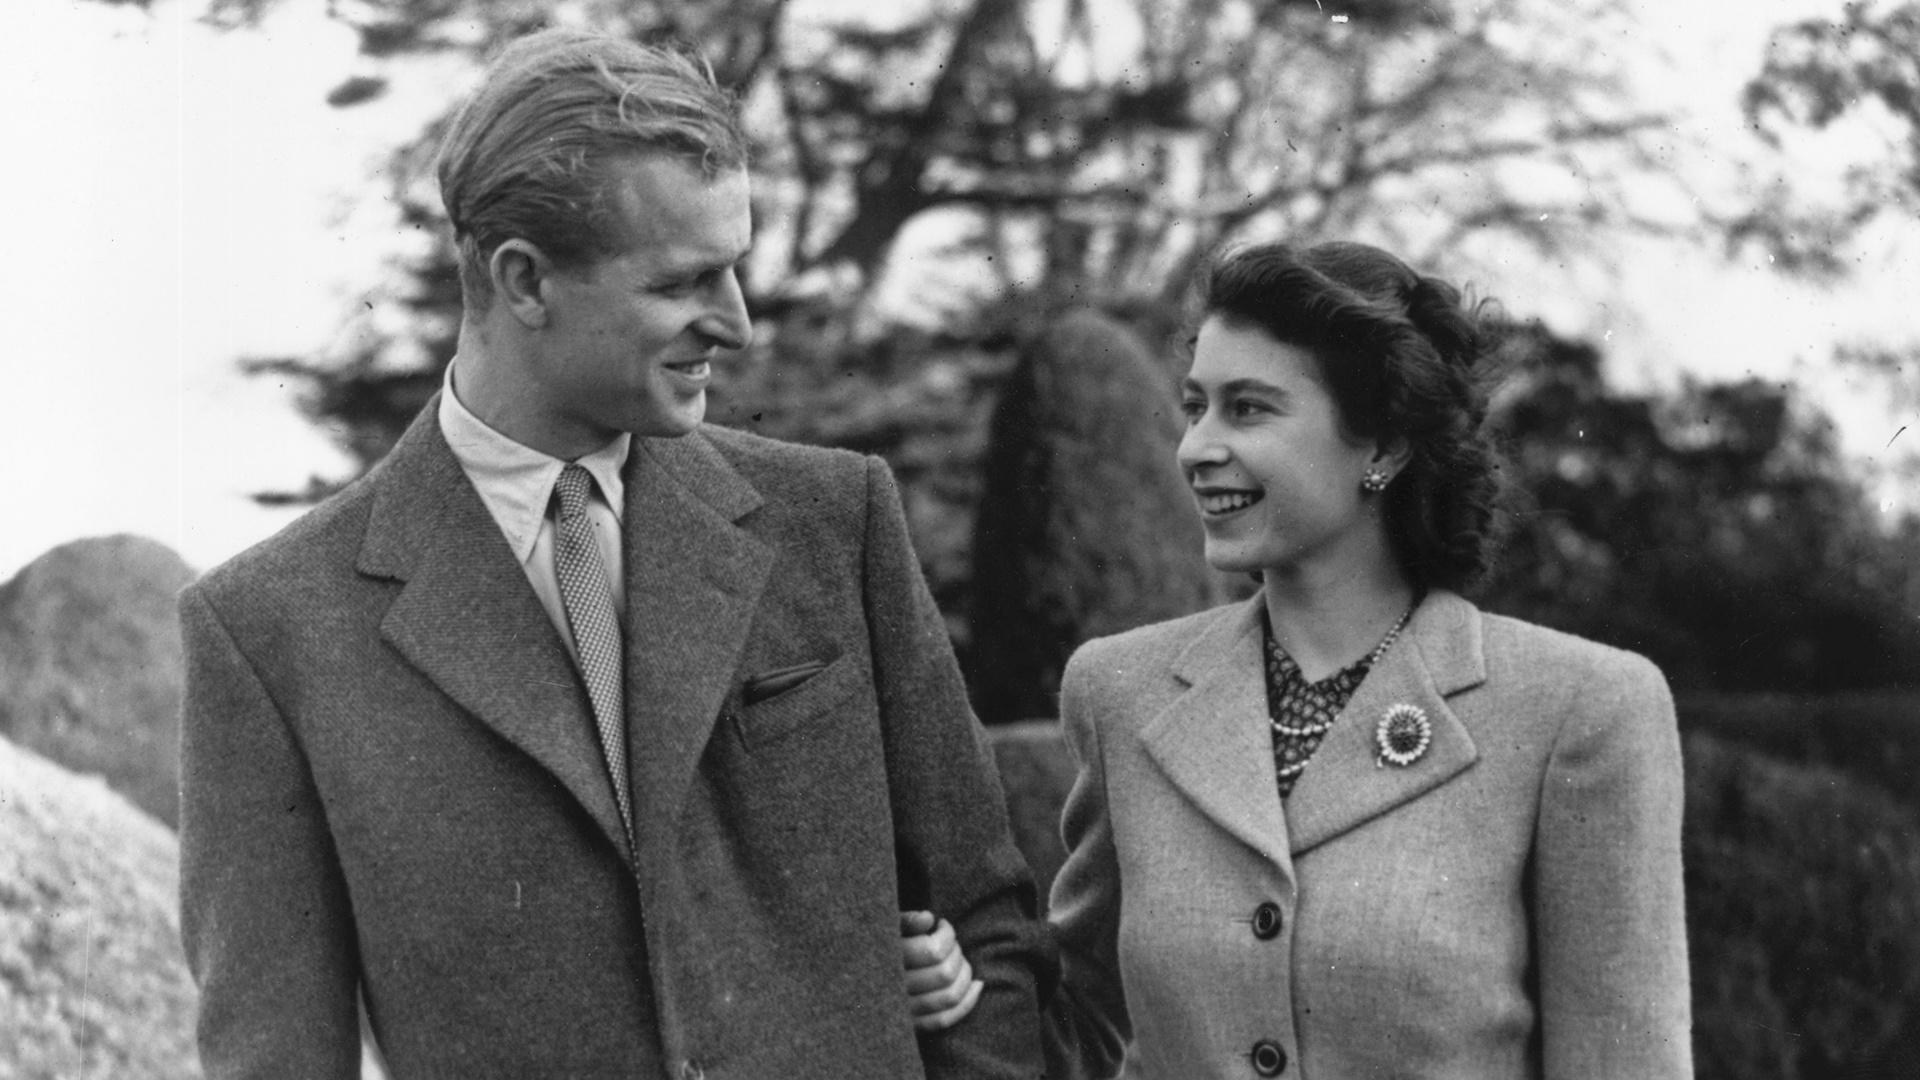 The British Royal Family Through the Years